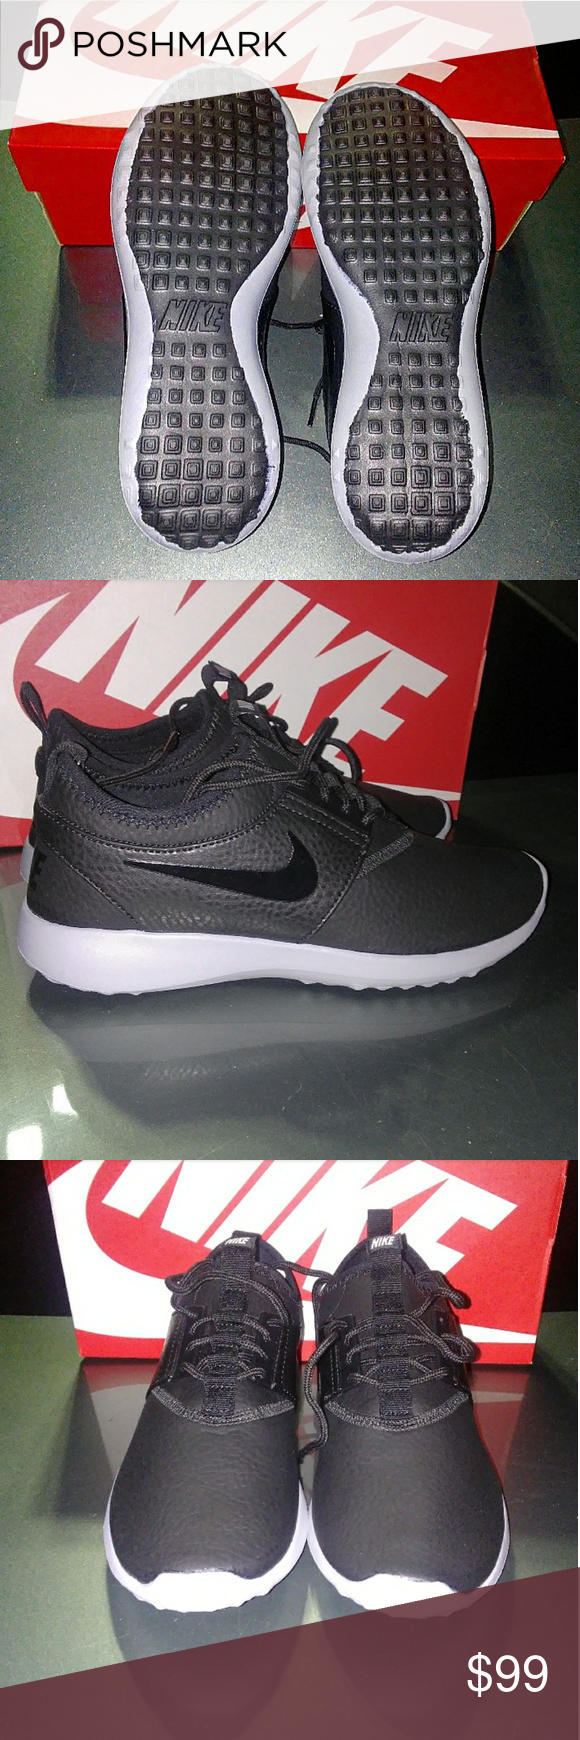 official photos e3dfd 6a864 Women s Nike Juvenate Prm (Size 8) Brand new in box 100% authentic  Excellent condition Size 8 women Black upper Grey midsole Ships doubled  boxed Same ...